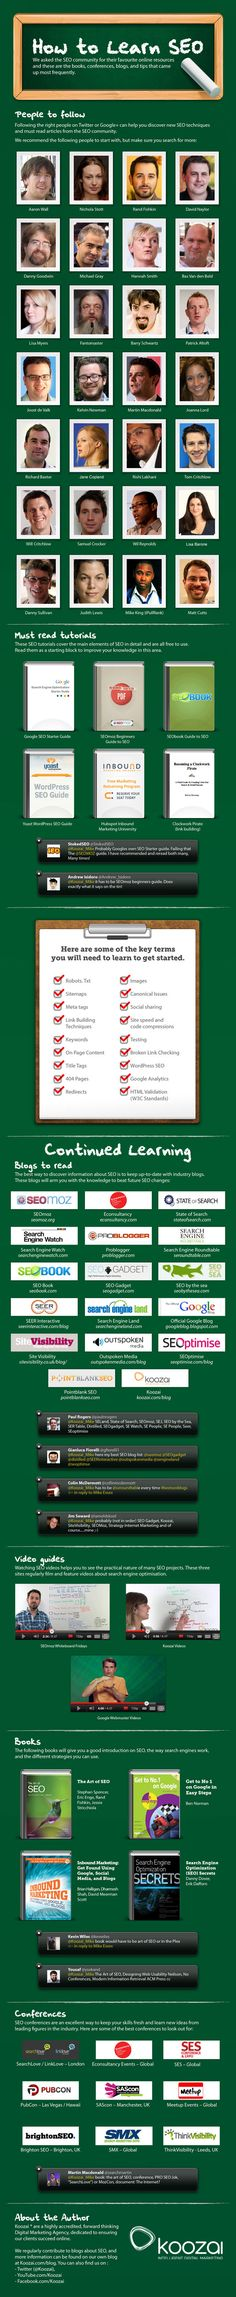 Learning SEO? Here are some tips